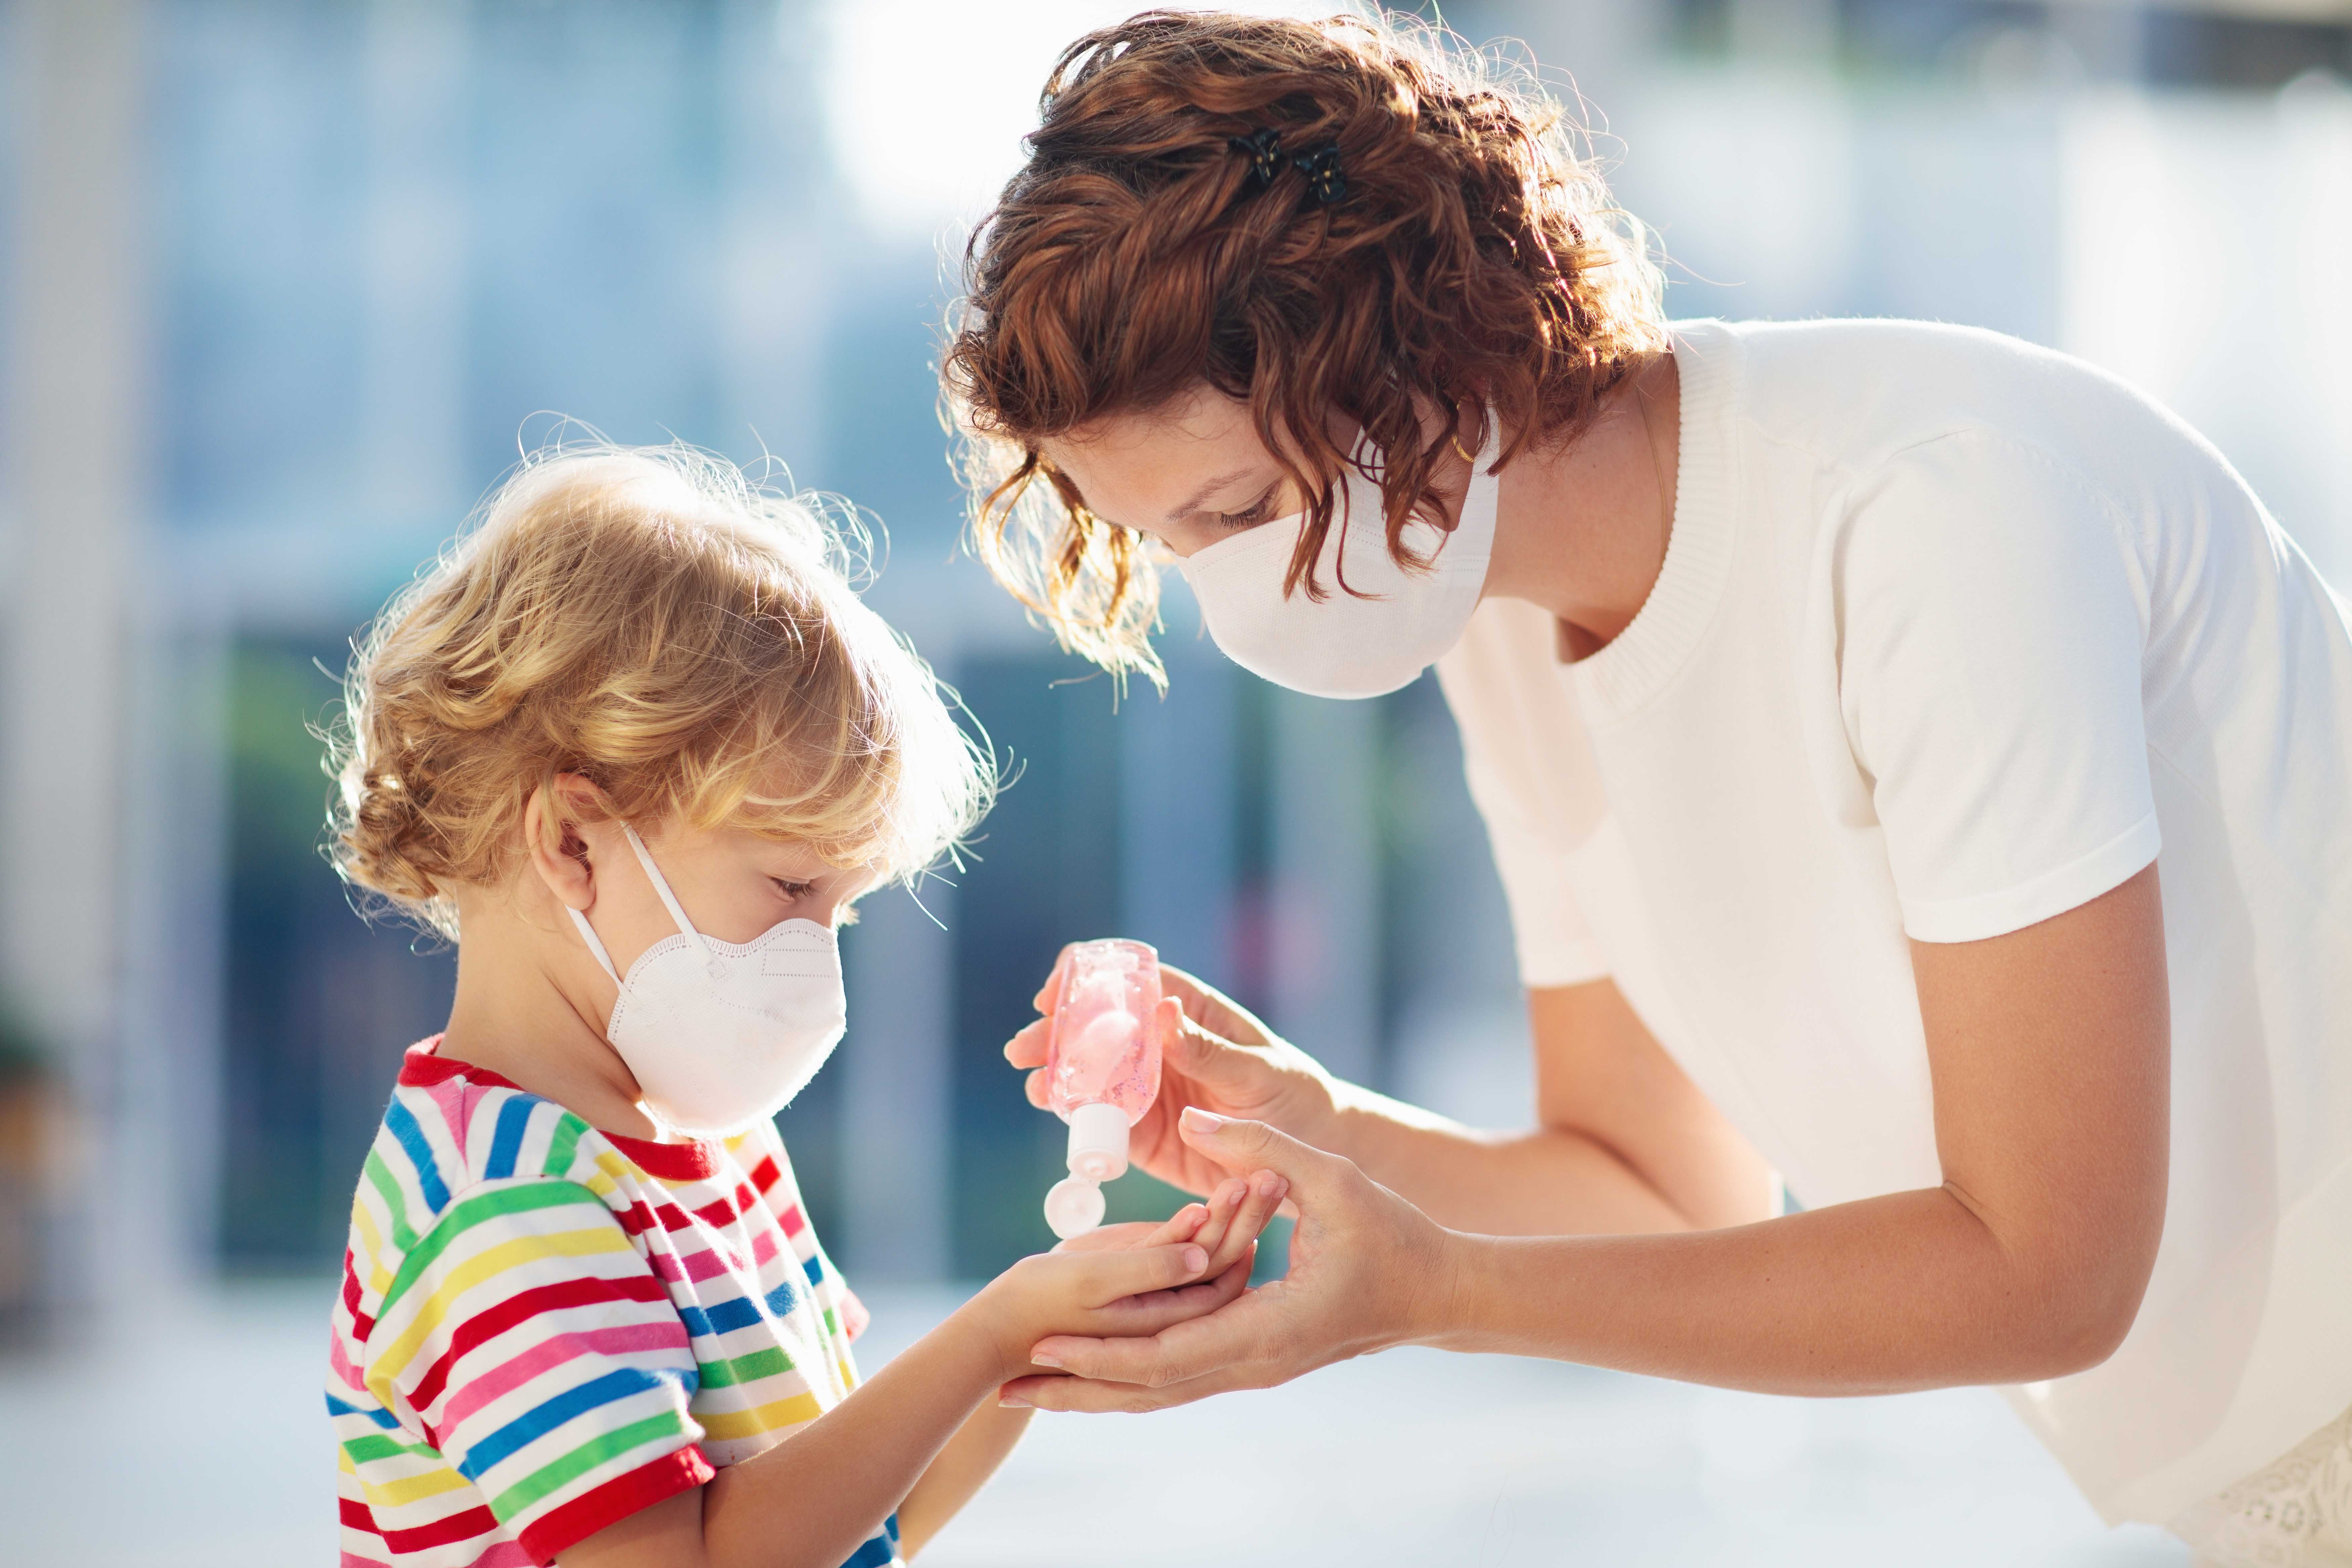 Women giving child hand sanitizer with face masks on.